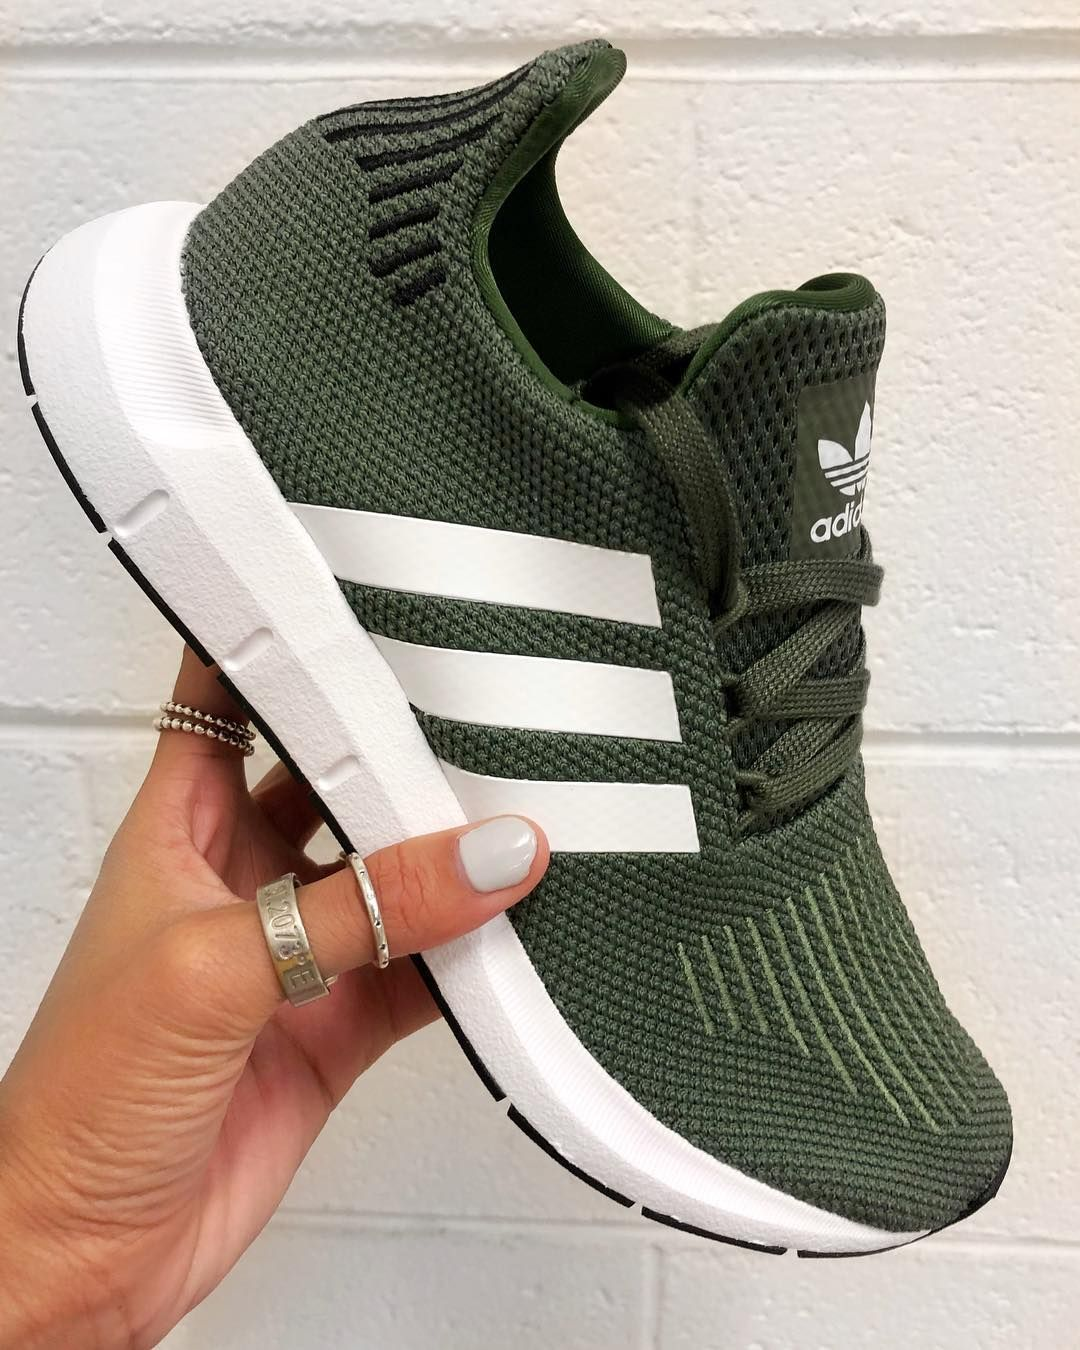 3806501cfe5c8 adidas Originals Swift Run – Green – AQ0866 - Shoes. Stylish adidas shoes  displayed by woman with jewellery.